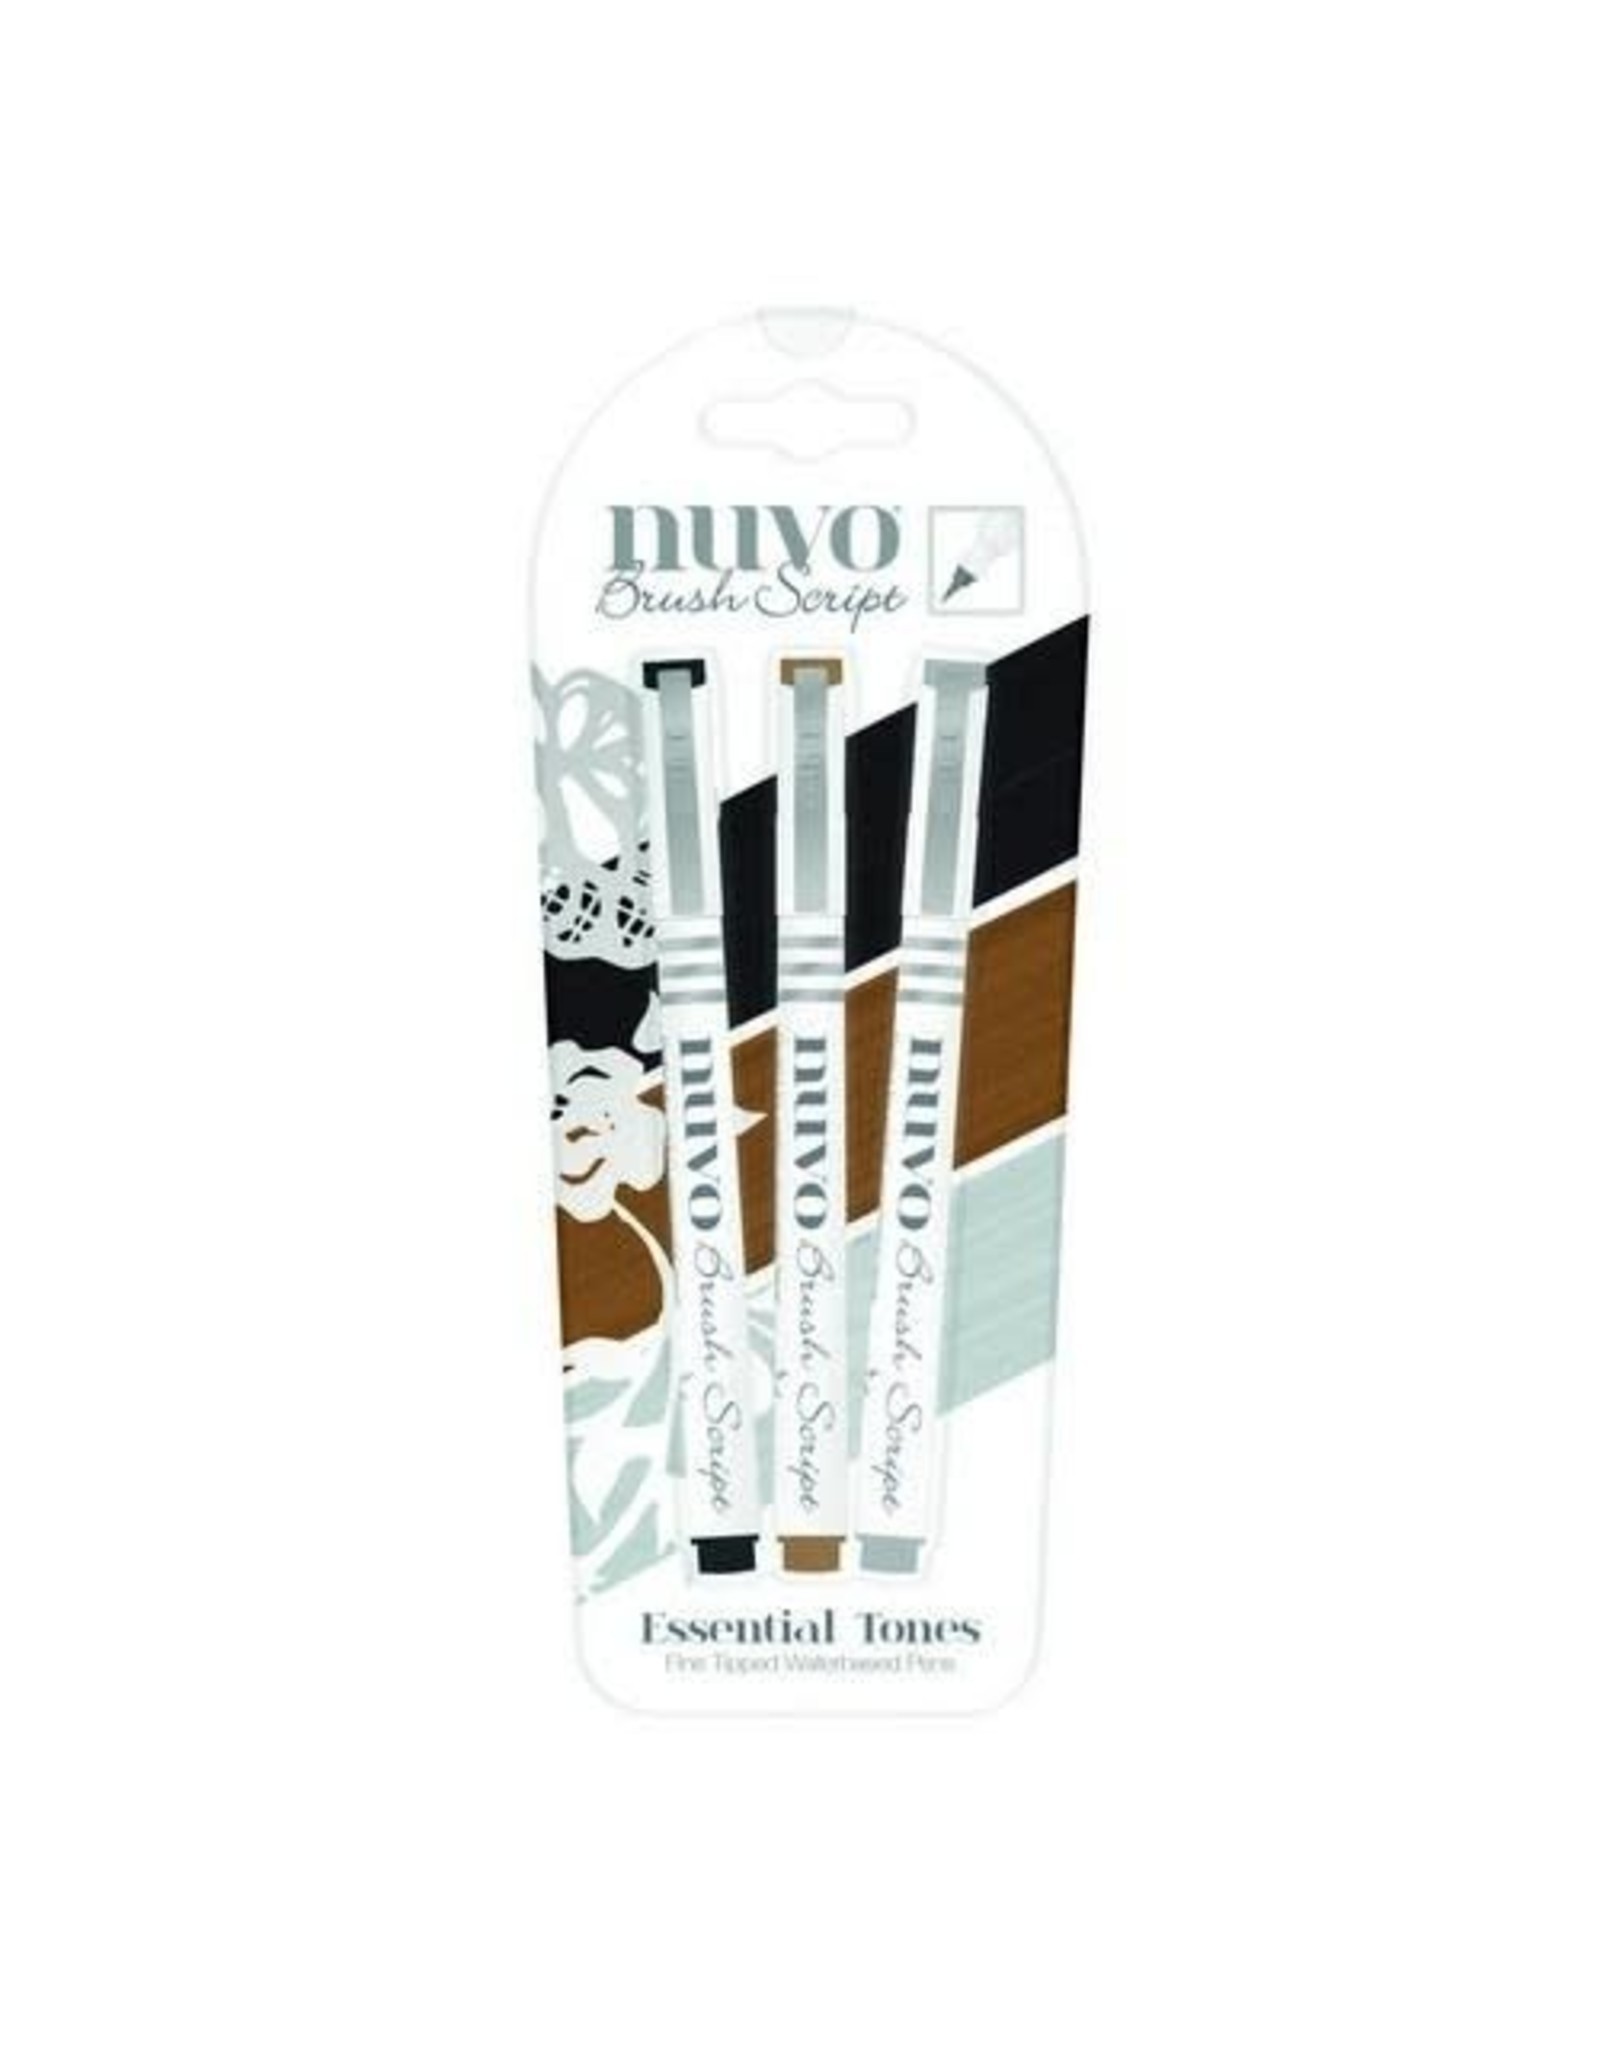 Nuvo by tonic Nuvo brush script pens - essential tones 110N